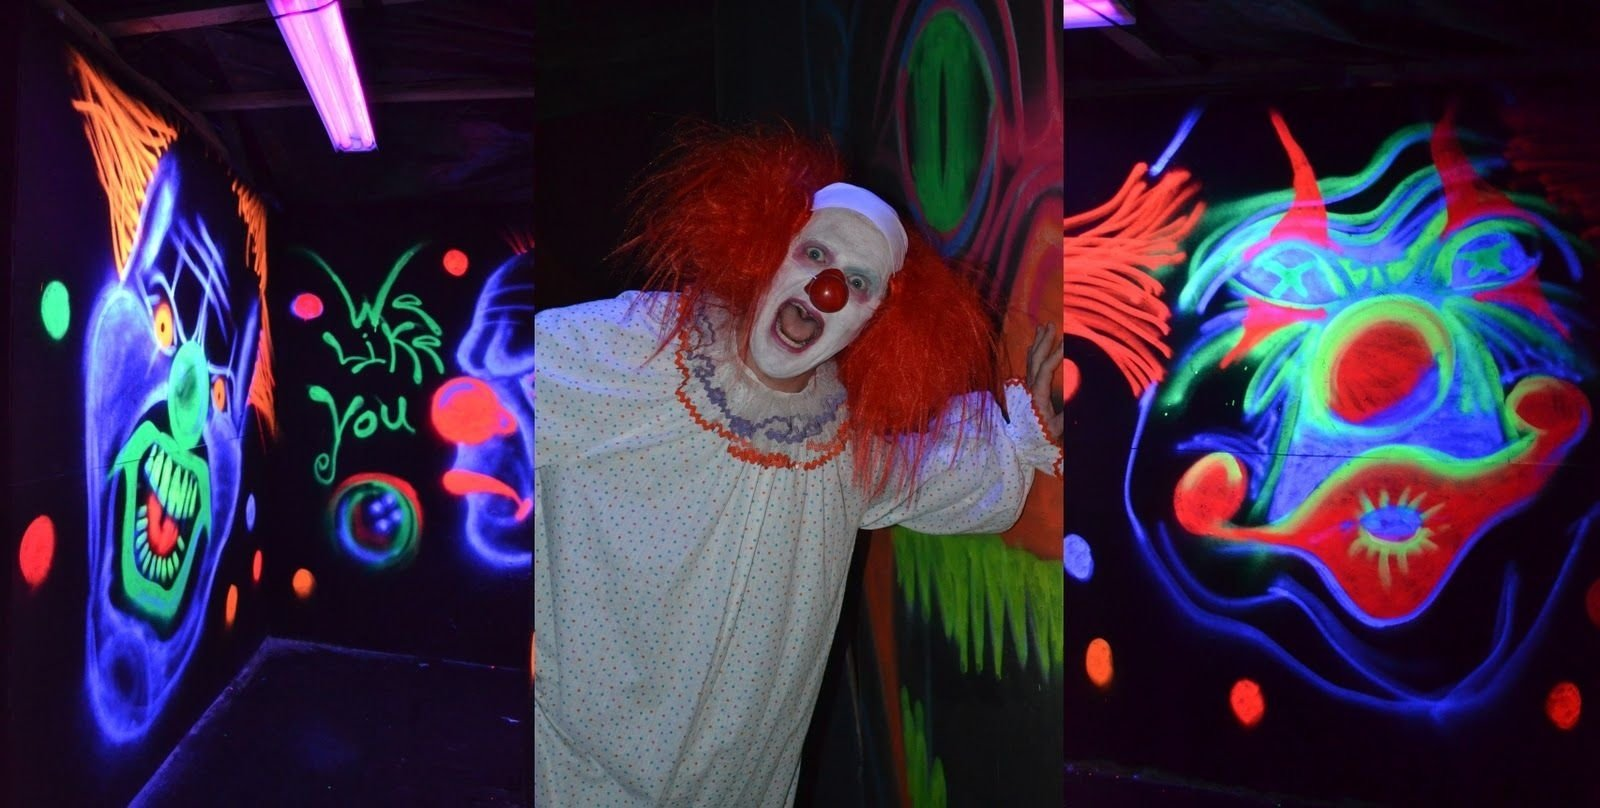 haunted house room ideas | third room was the clown room